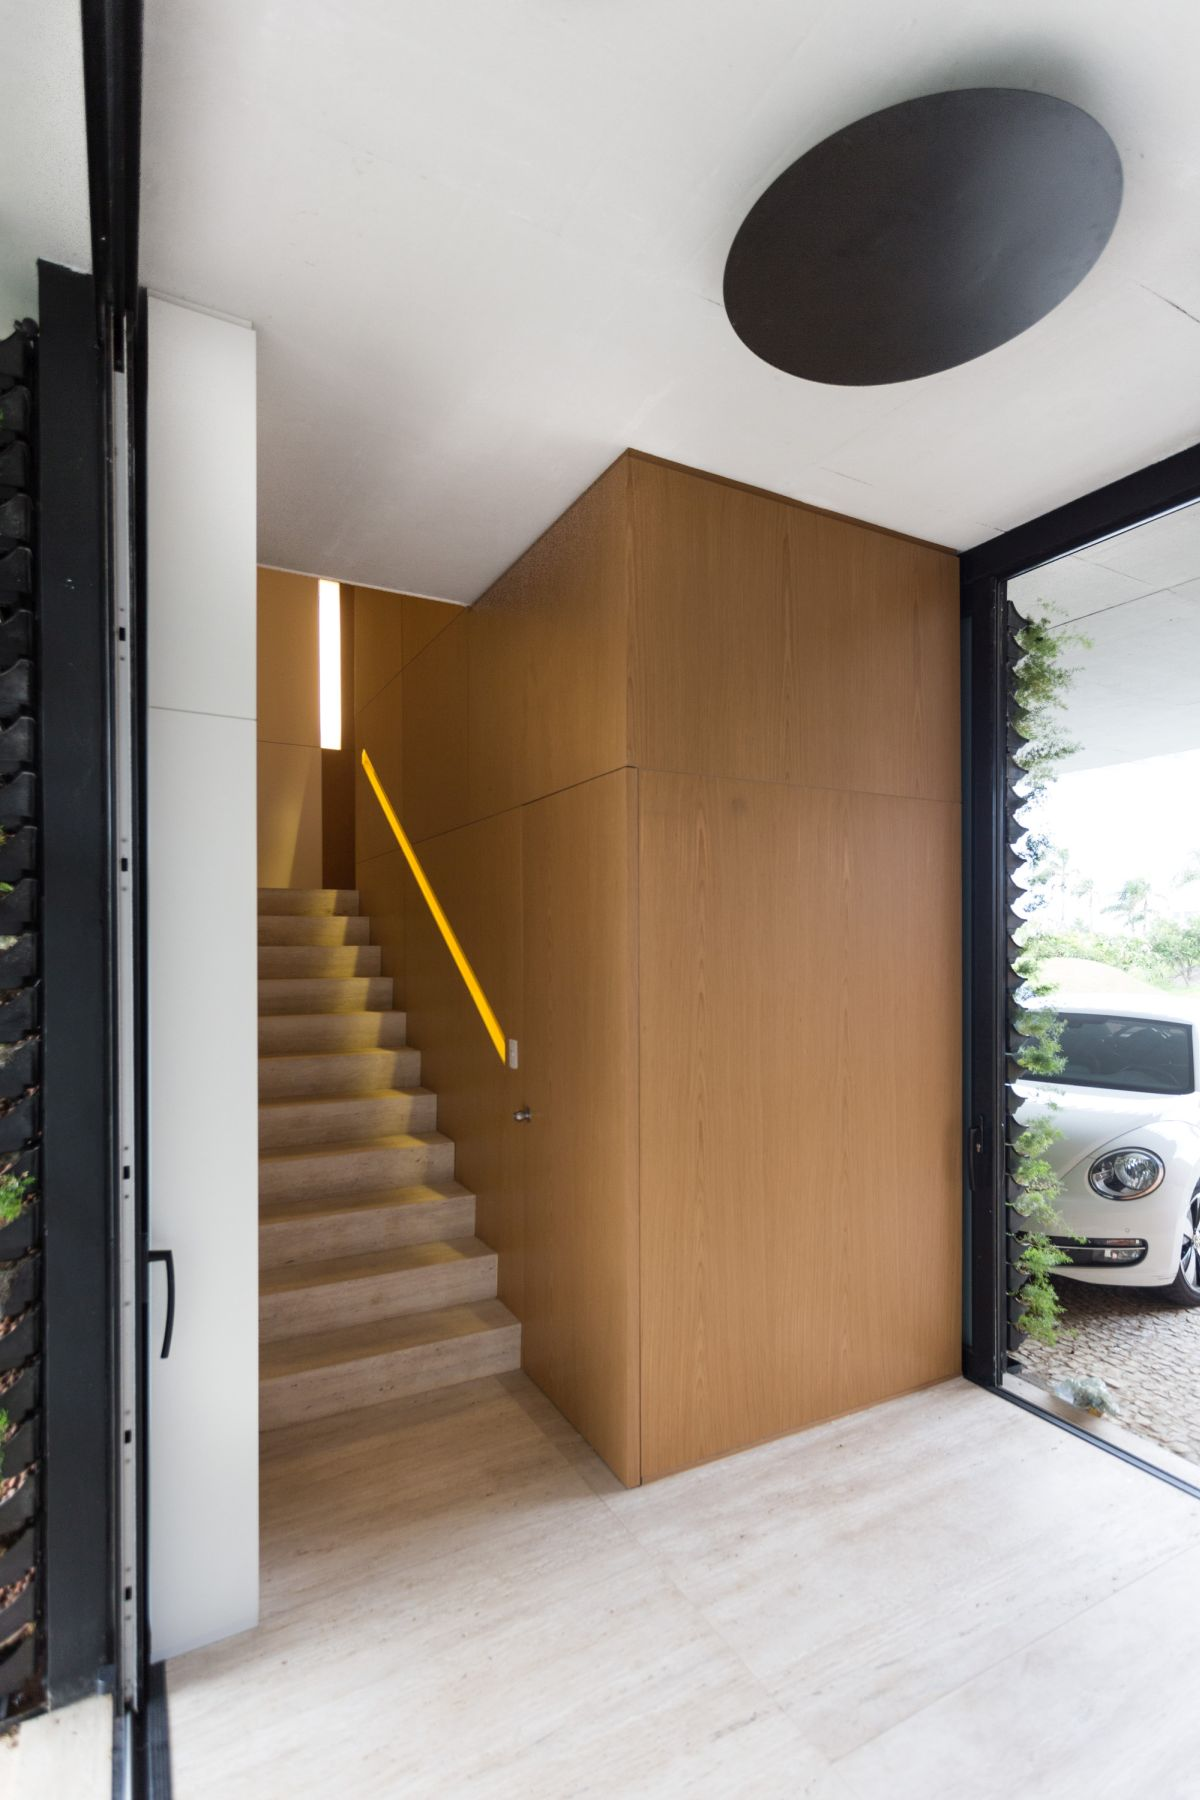 Enseada House in Brazil staircase with a cool handrail